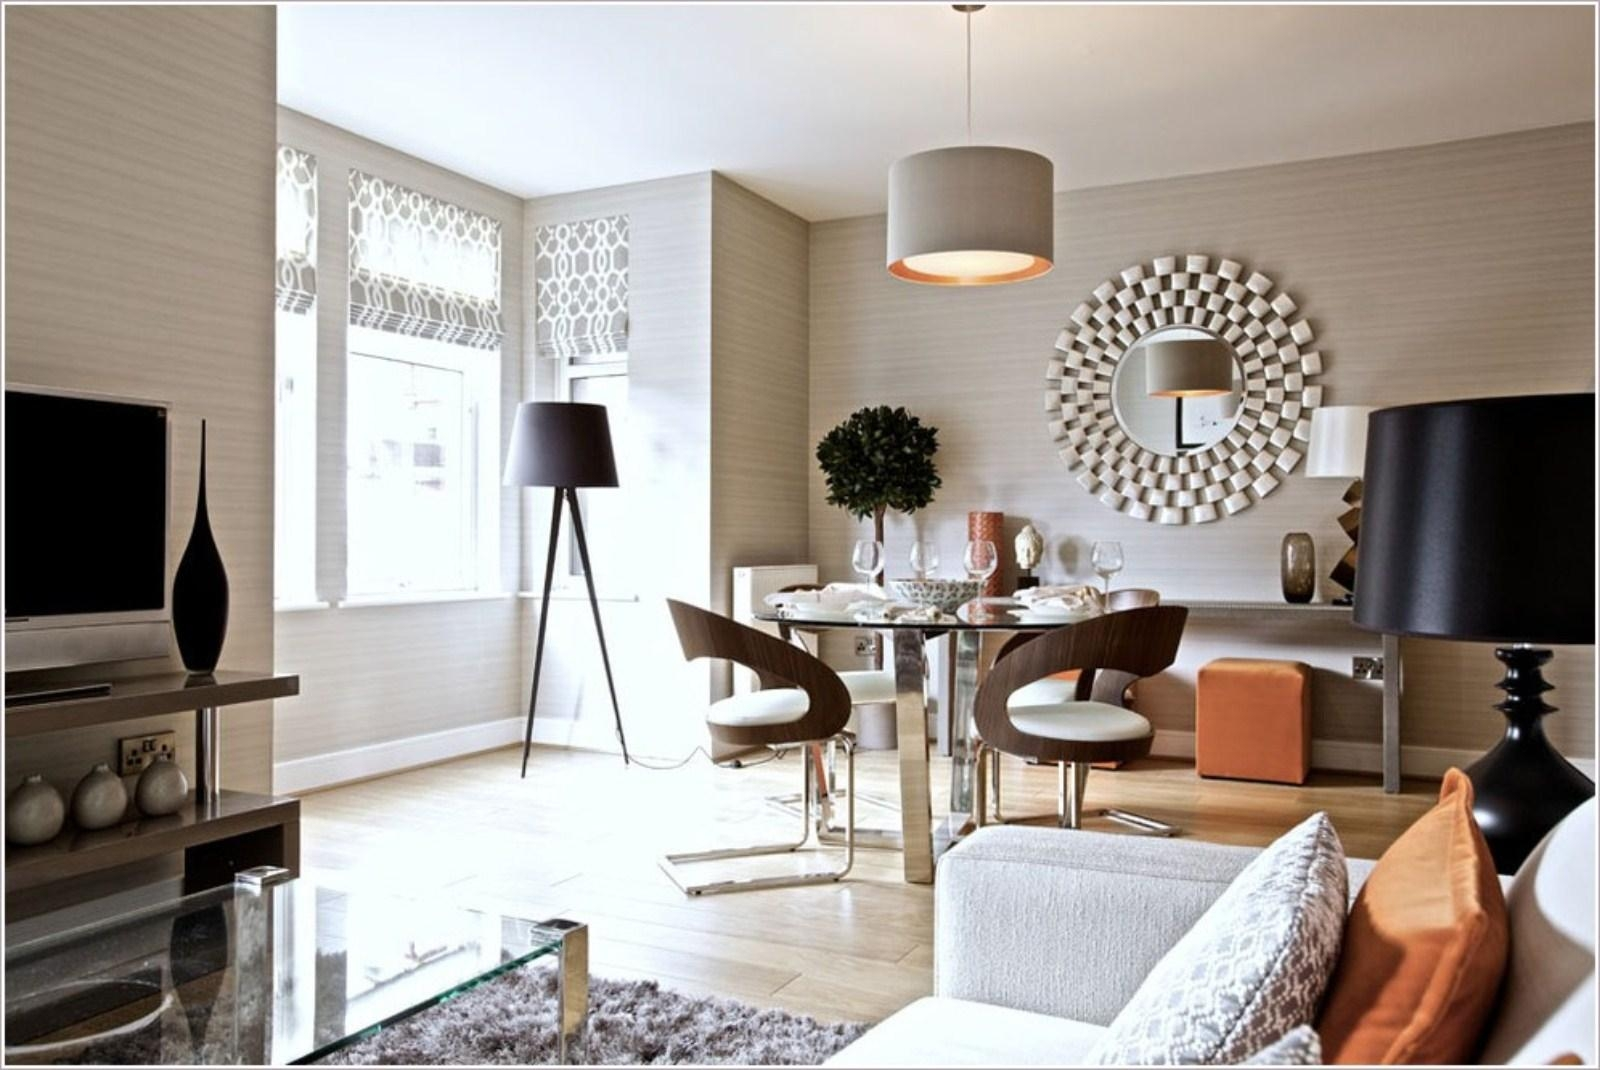 Plain Ideas Decorative Mirrors For Dining Room Lovely Design Dcor With Regard To Dining Mirrors (View 14 of 20)